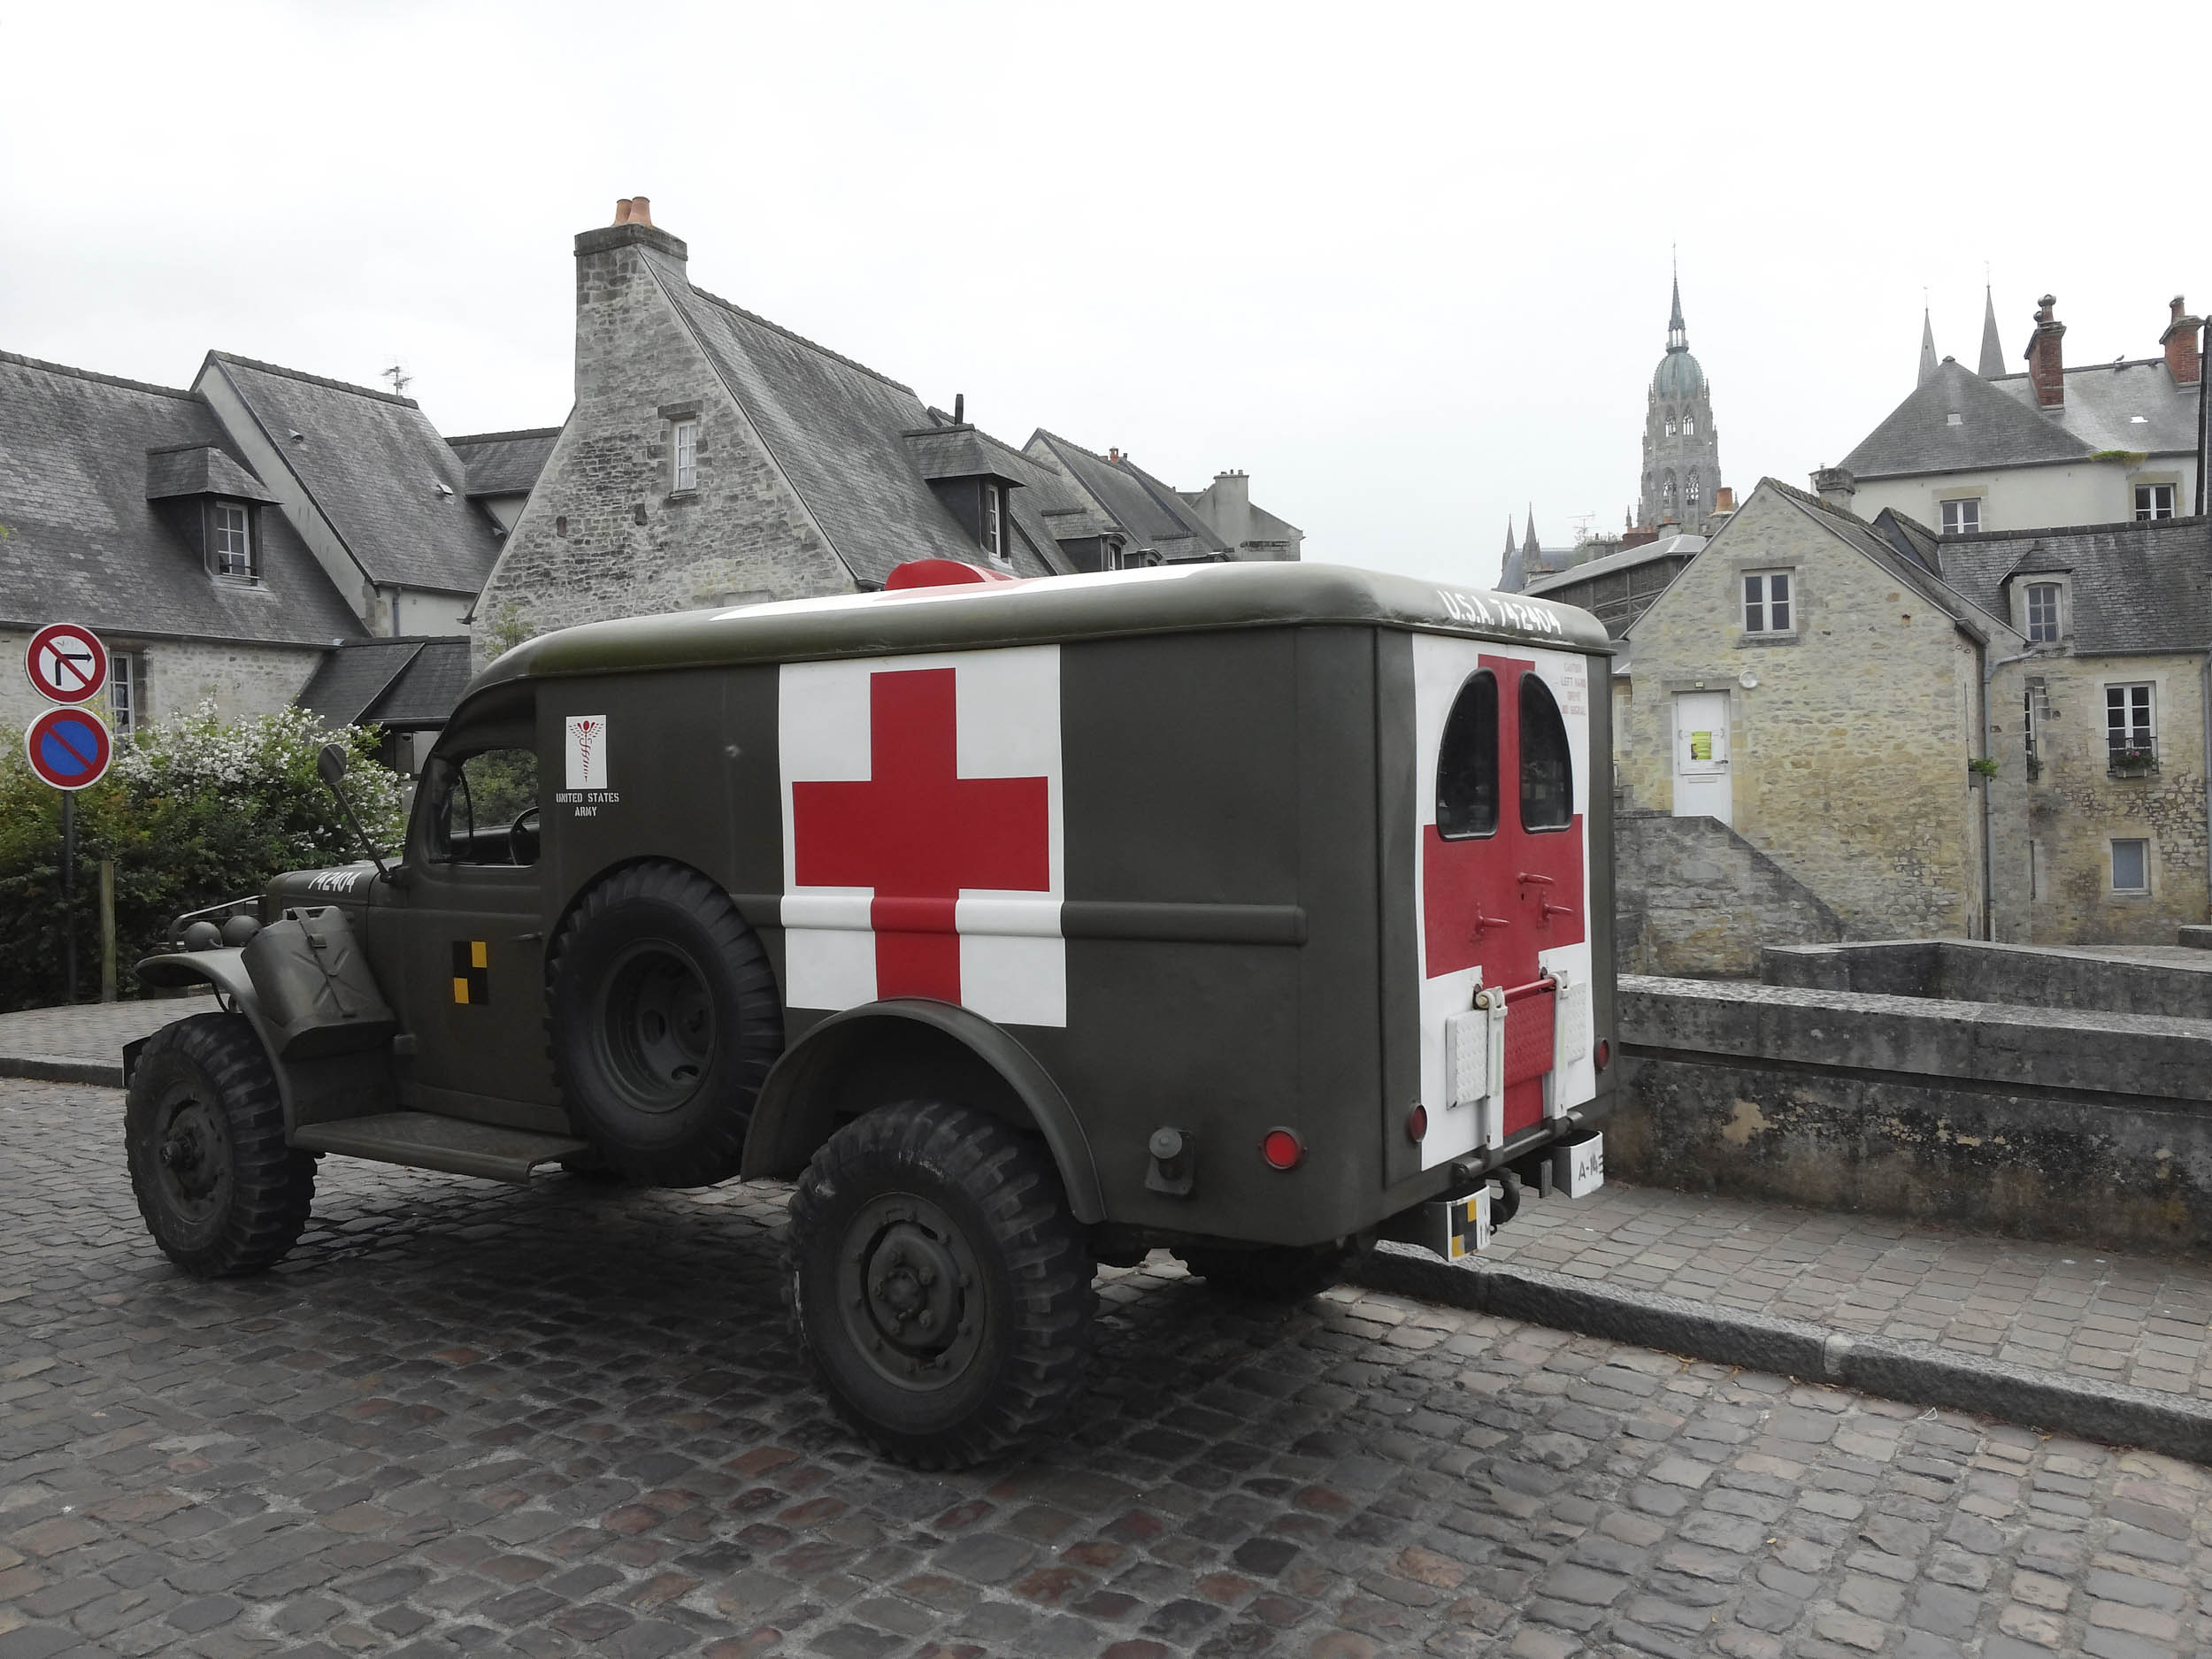 1942 Dodge WC54 ambulance, WW2